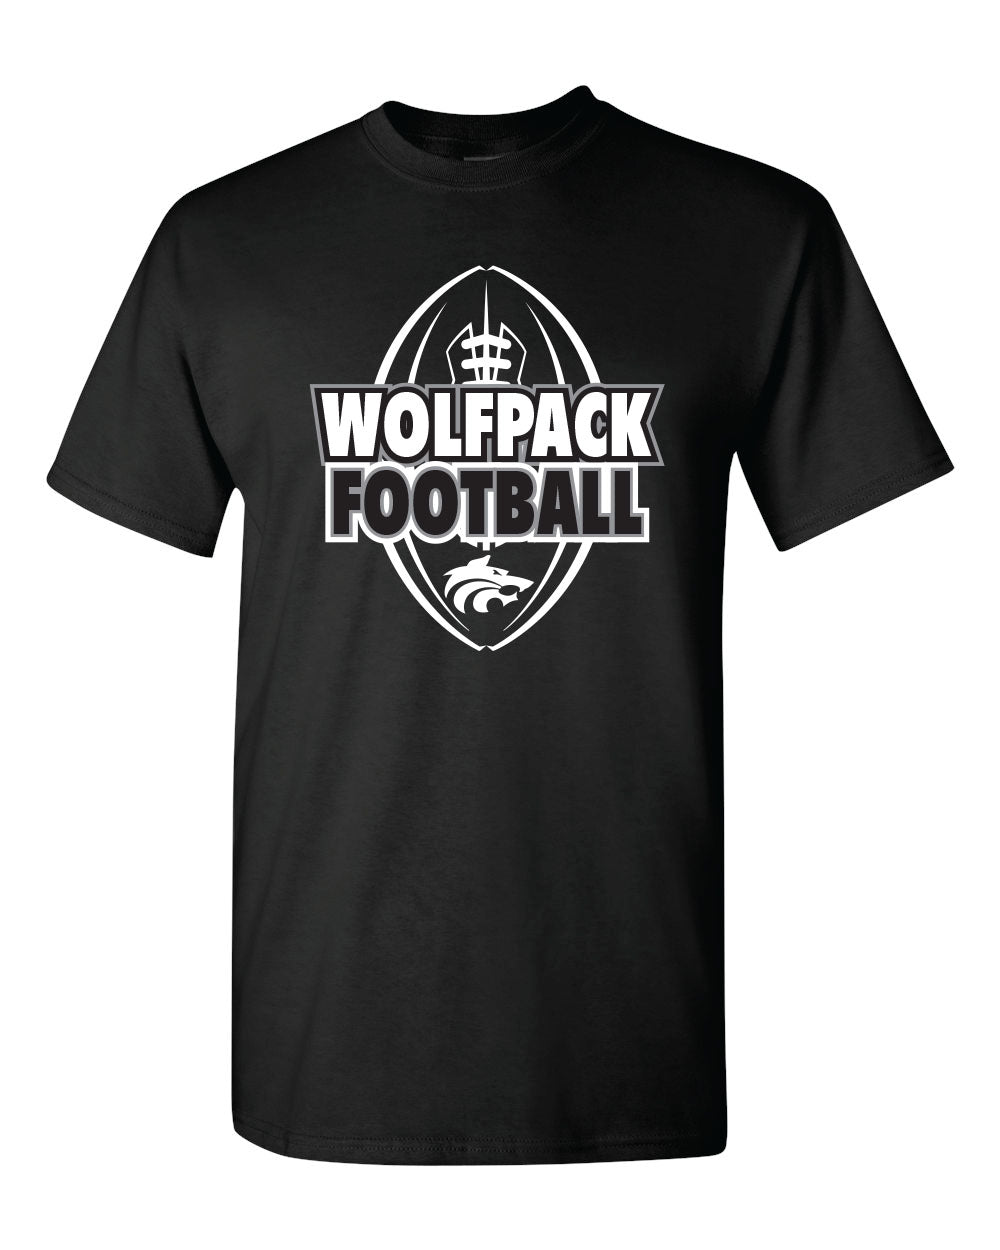 WOLFPACK FOOTBALL - PRIDE SHIRT - BLACK SHIRT